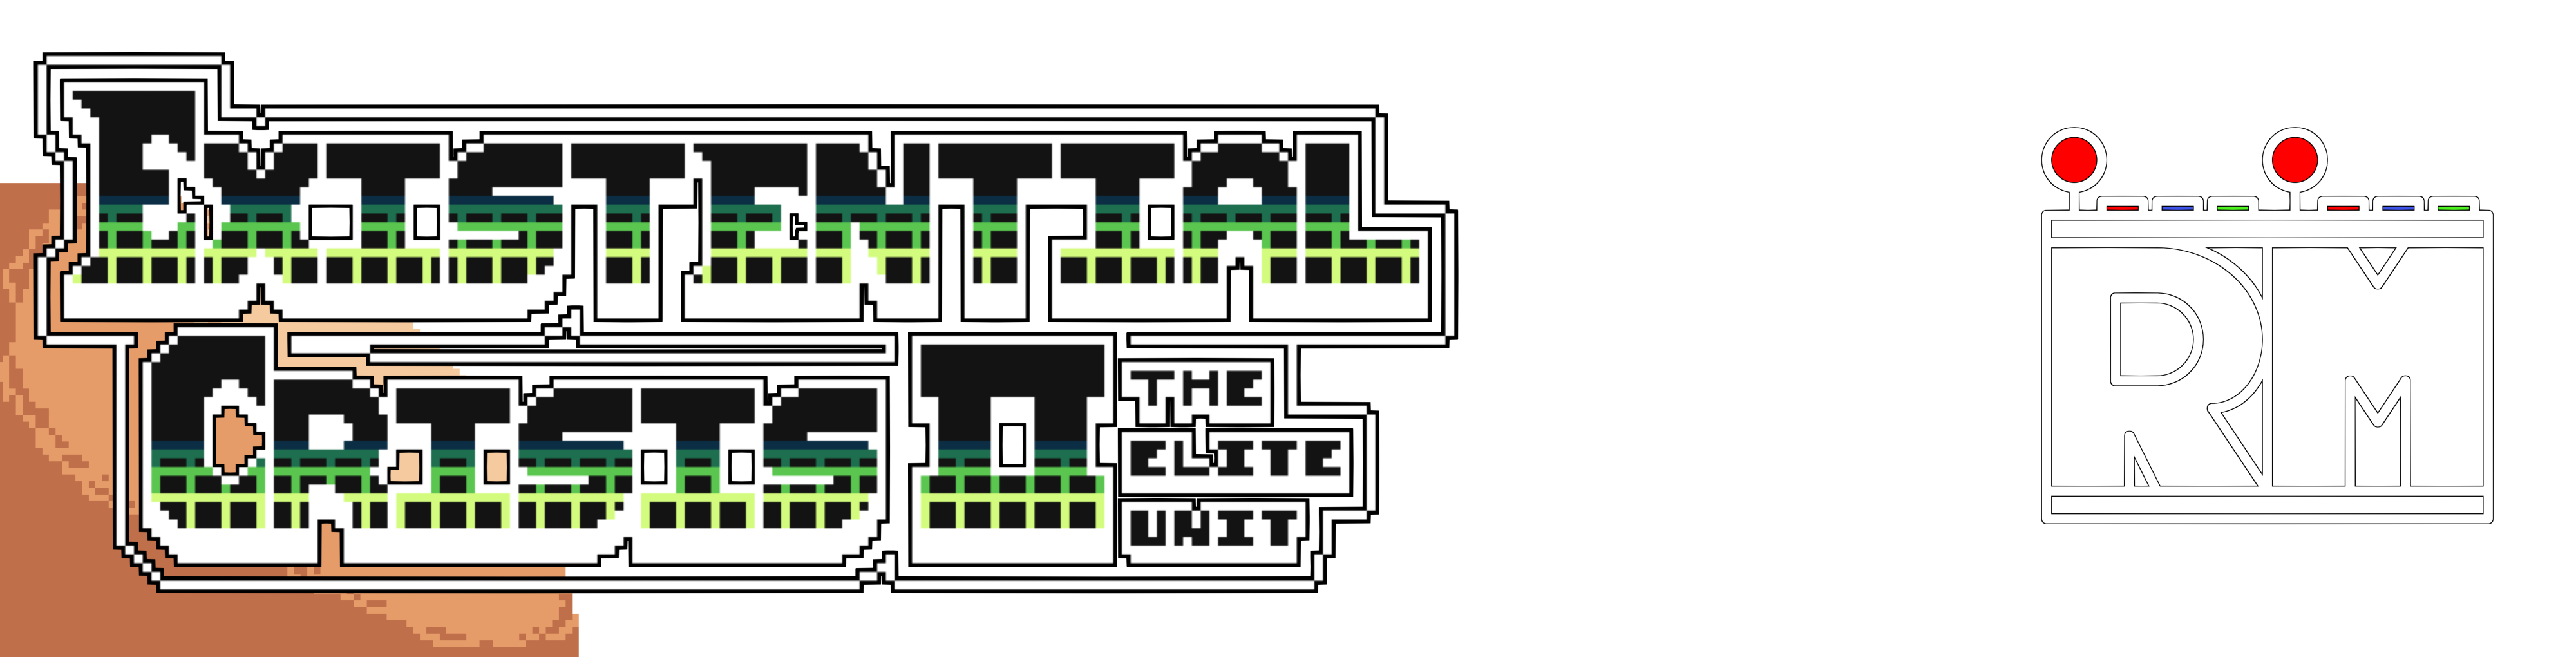 Existential Crisis 2: The Elite Unit | Shoot-em-up